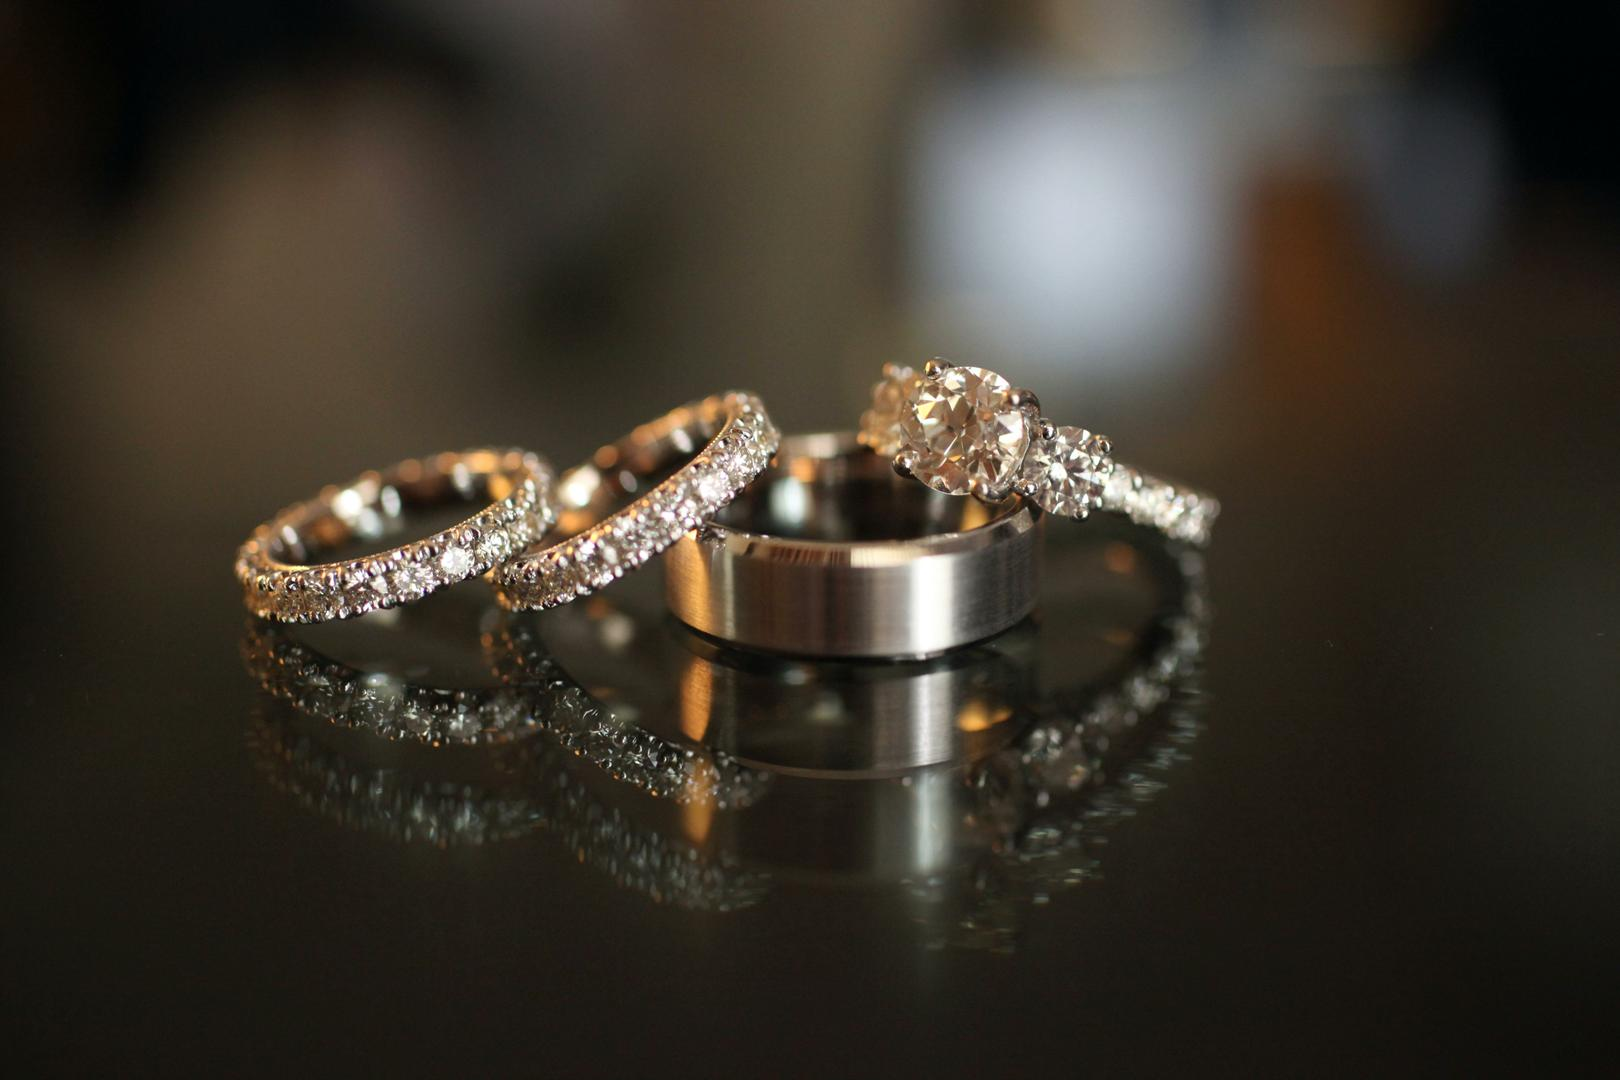 inspiring wedding ring sets for brides & grooms - inside weddings